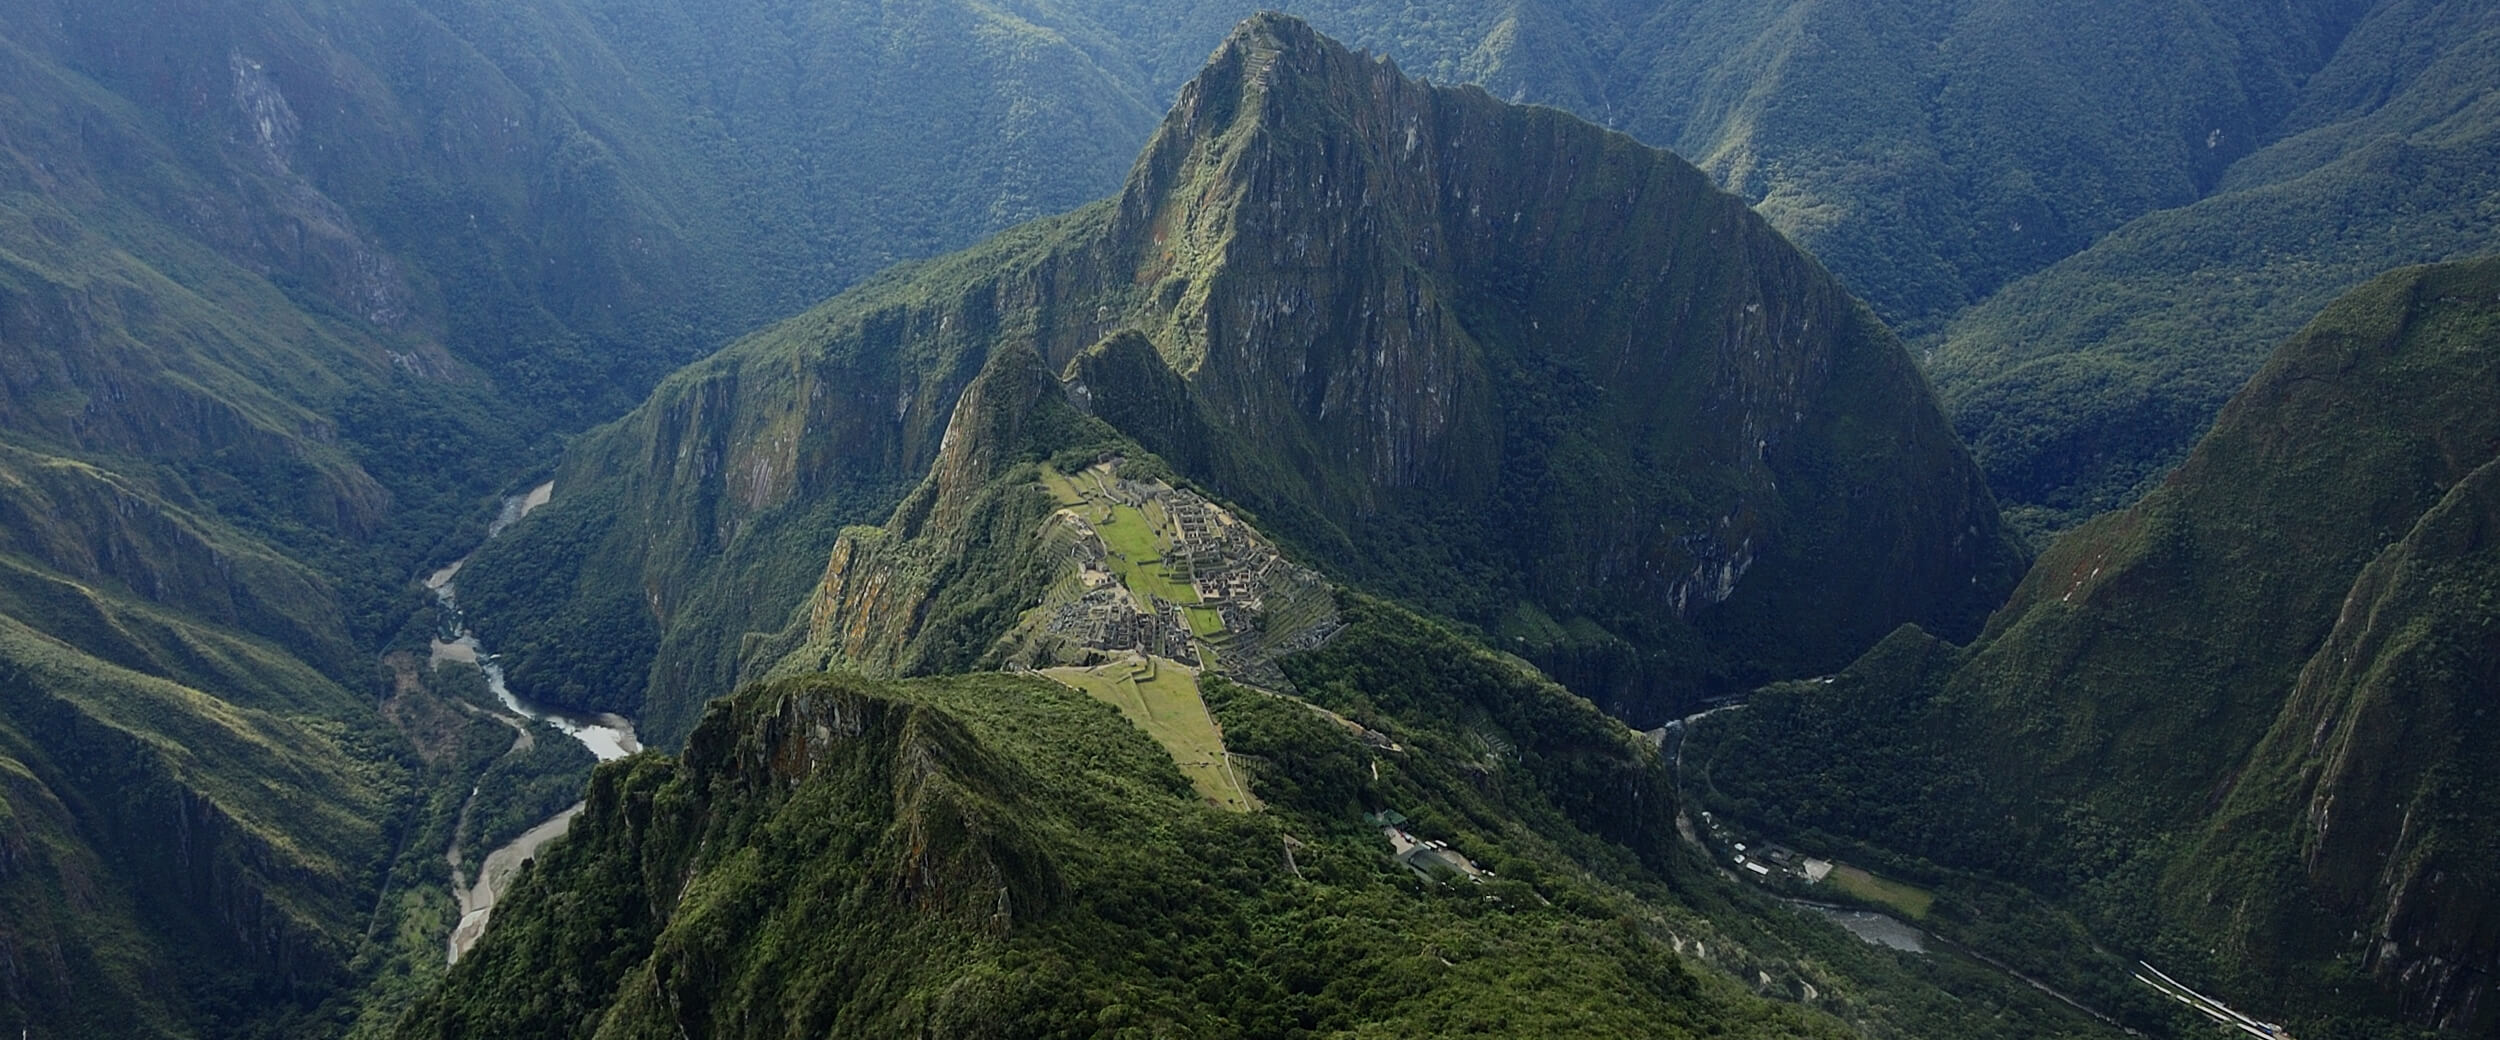 Machu Picchu 2 Days 1 NIght Over Night